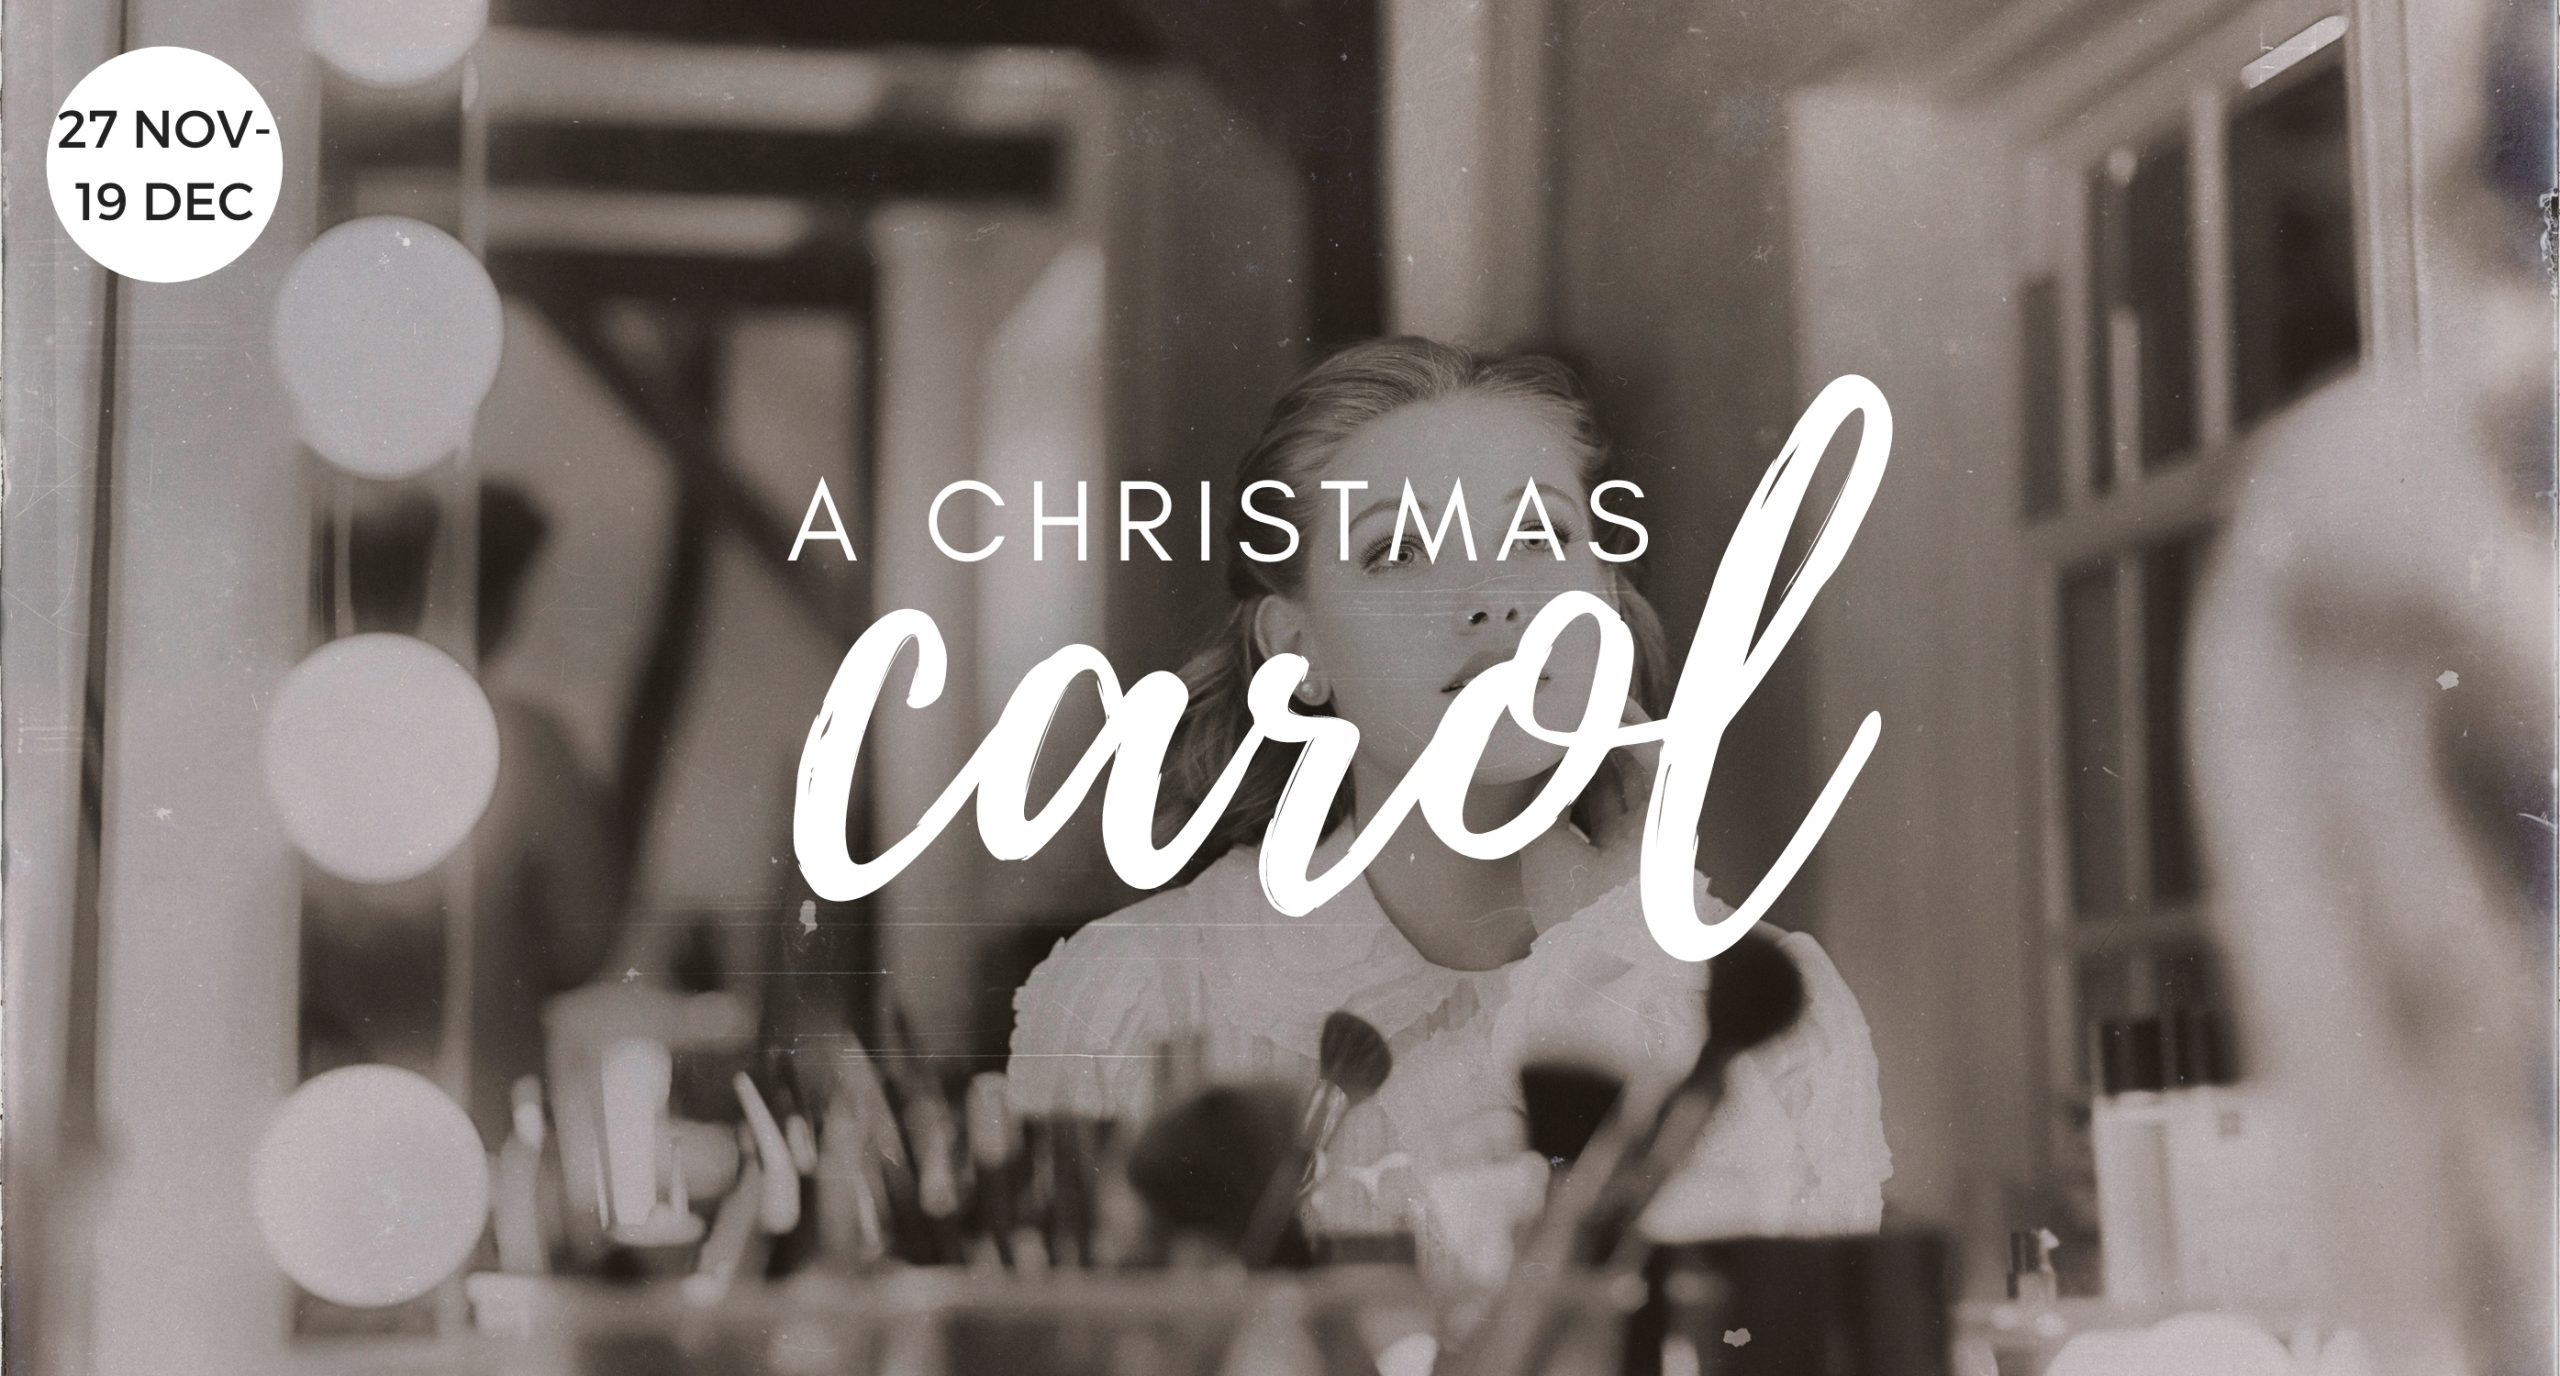 A Christmas Carol, Whidbey island, Local events, Windermere Real Estate, All in for you, Community, Culture